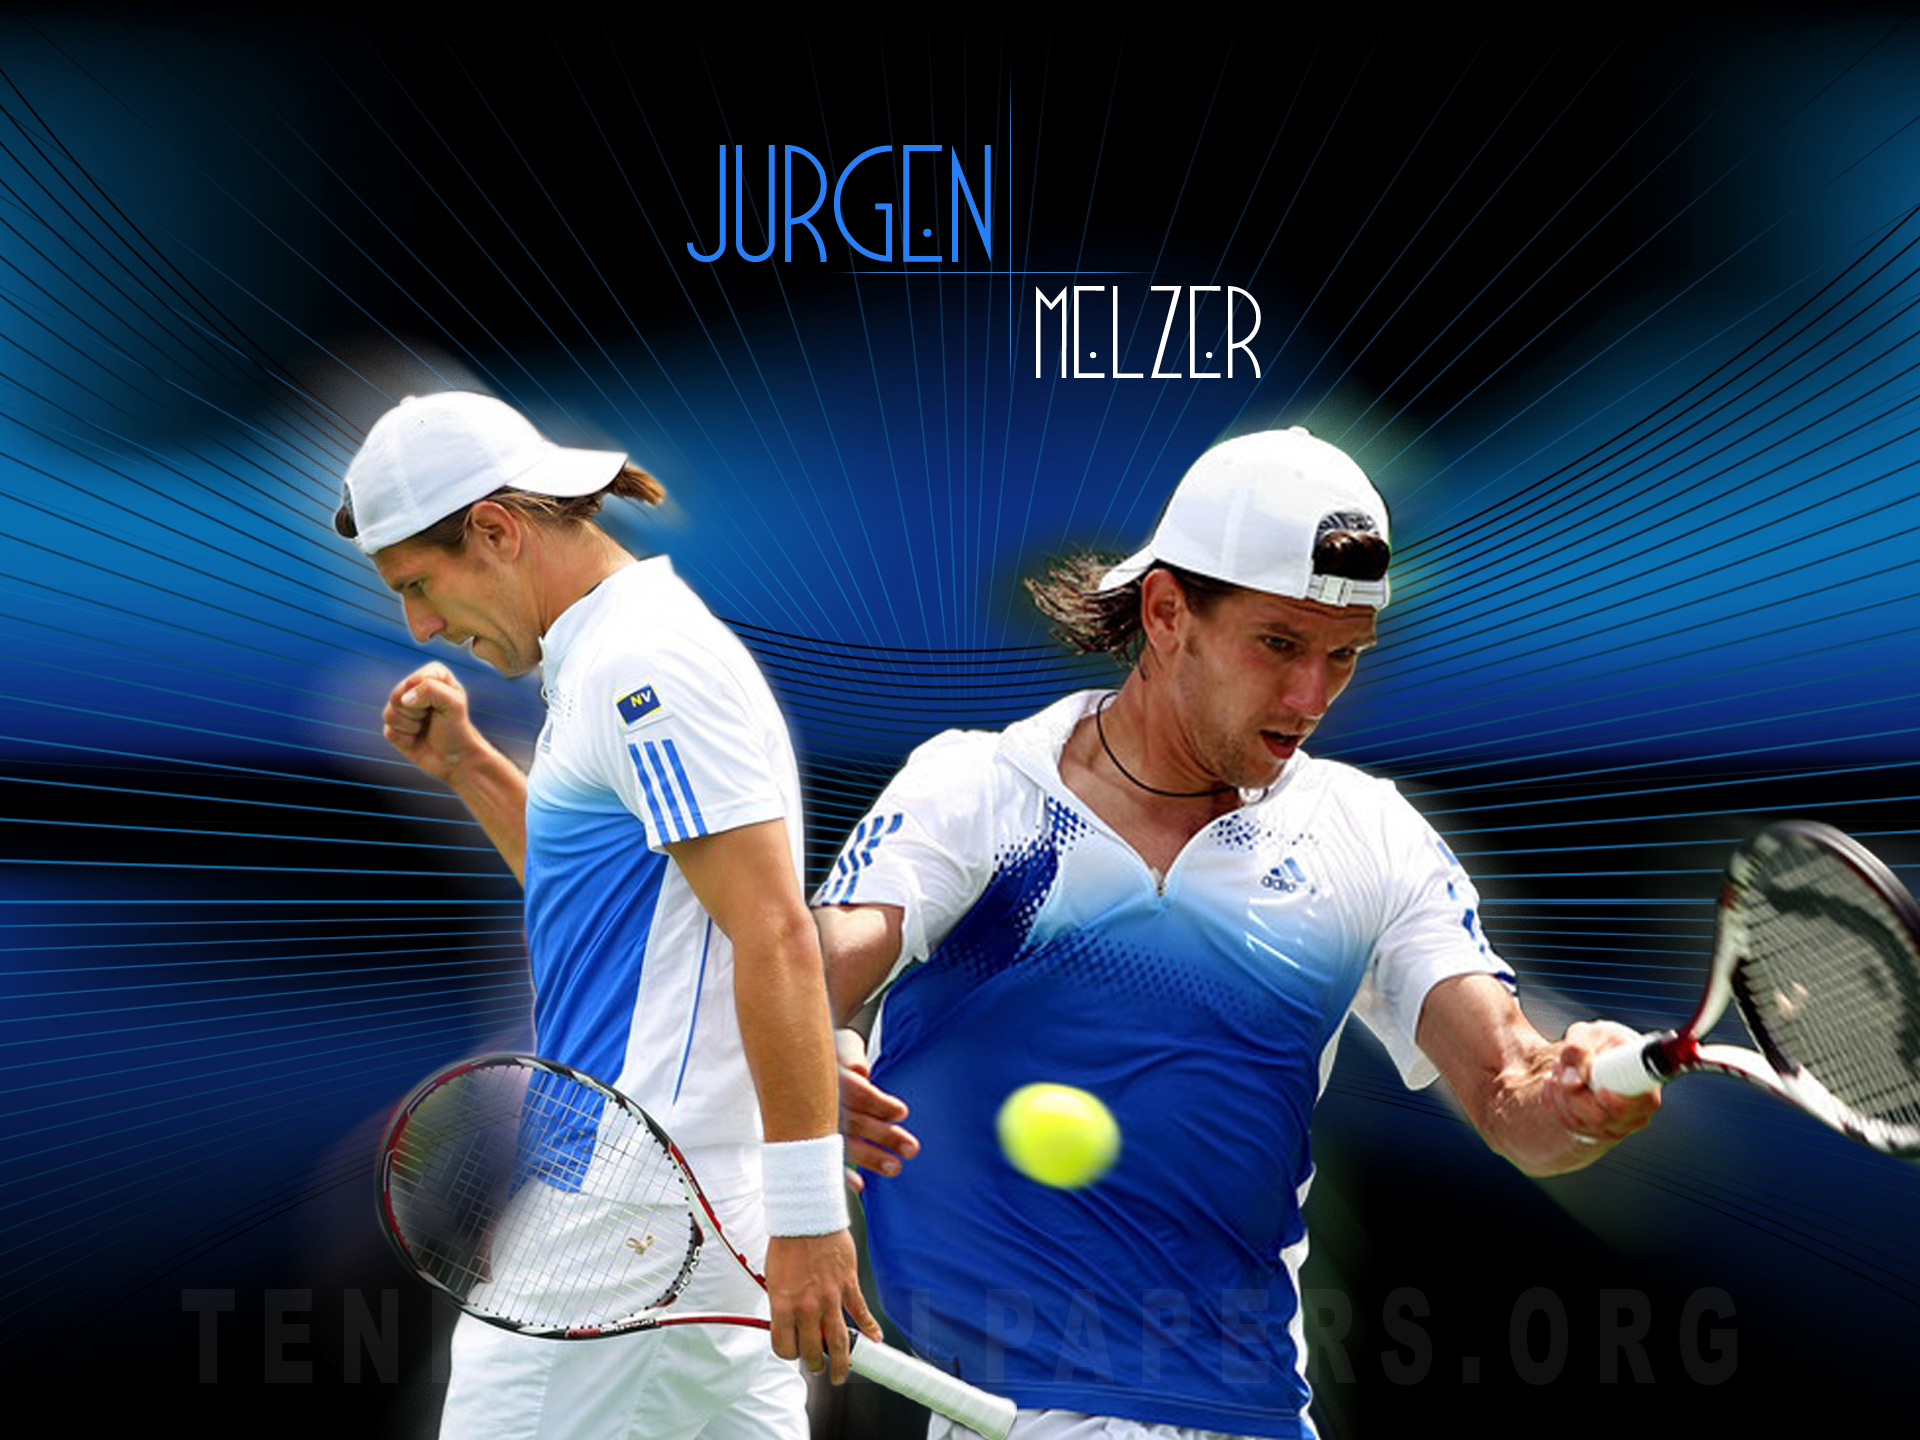 1920x1440 - Jurgen Melzer Wallpapers 15